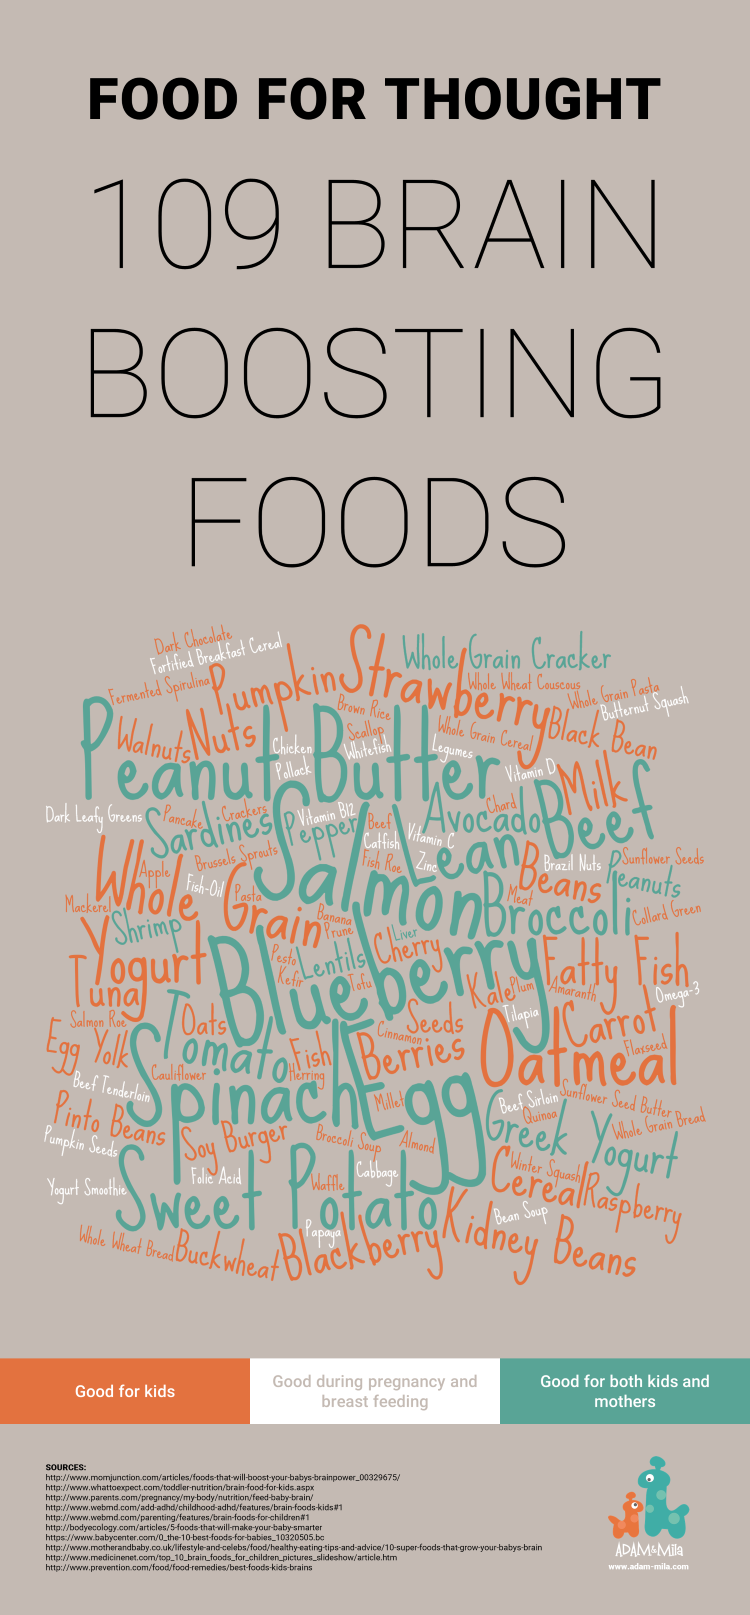 Brain Boosting Foods for Kids and Pregnant Mothers